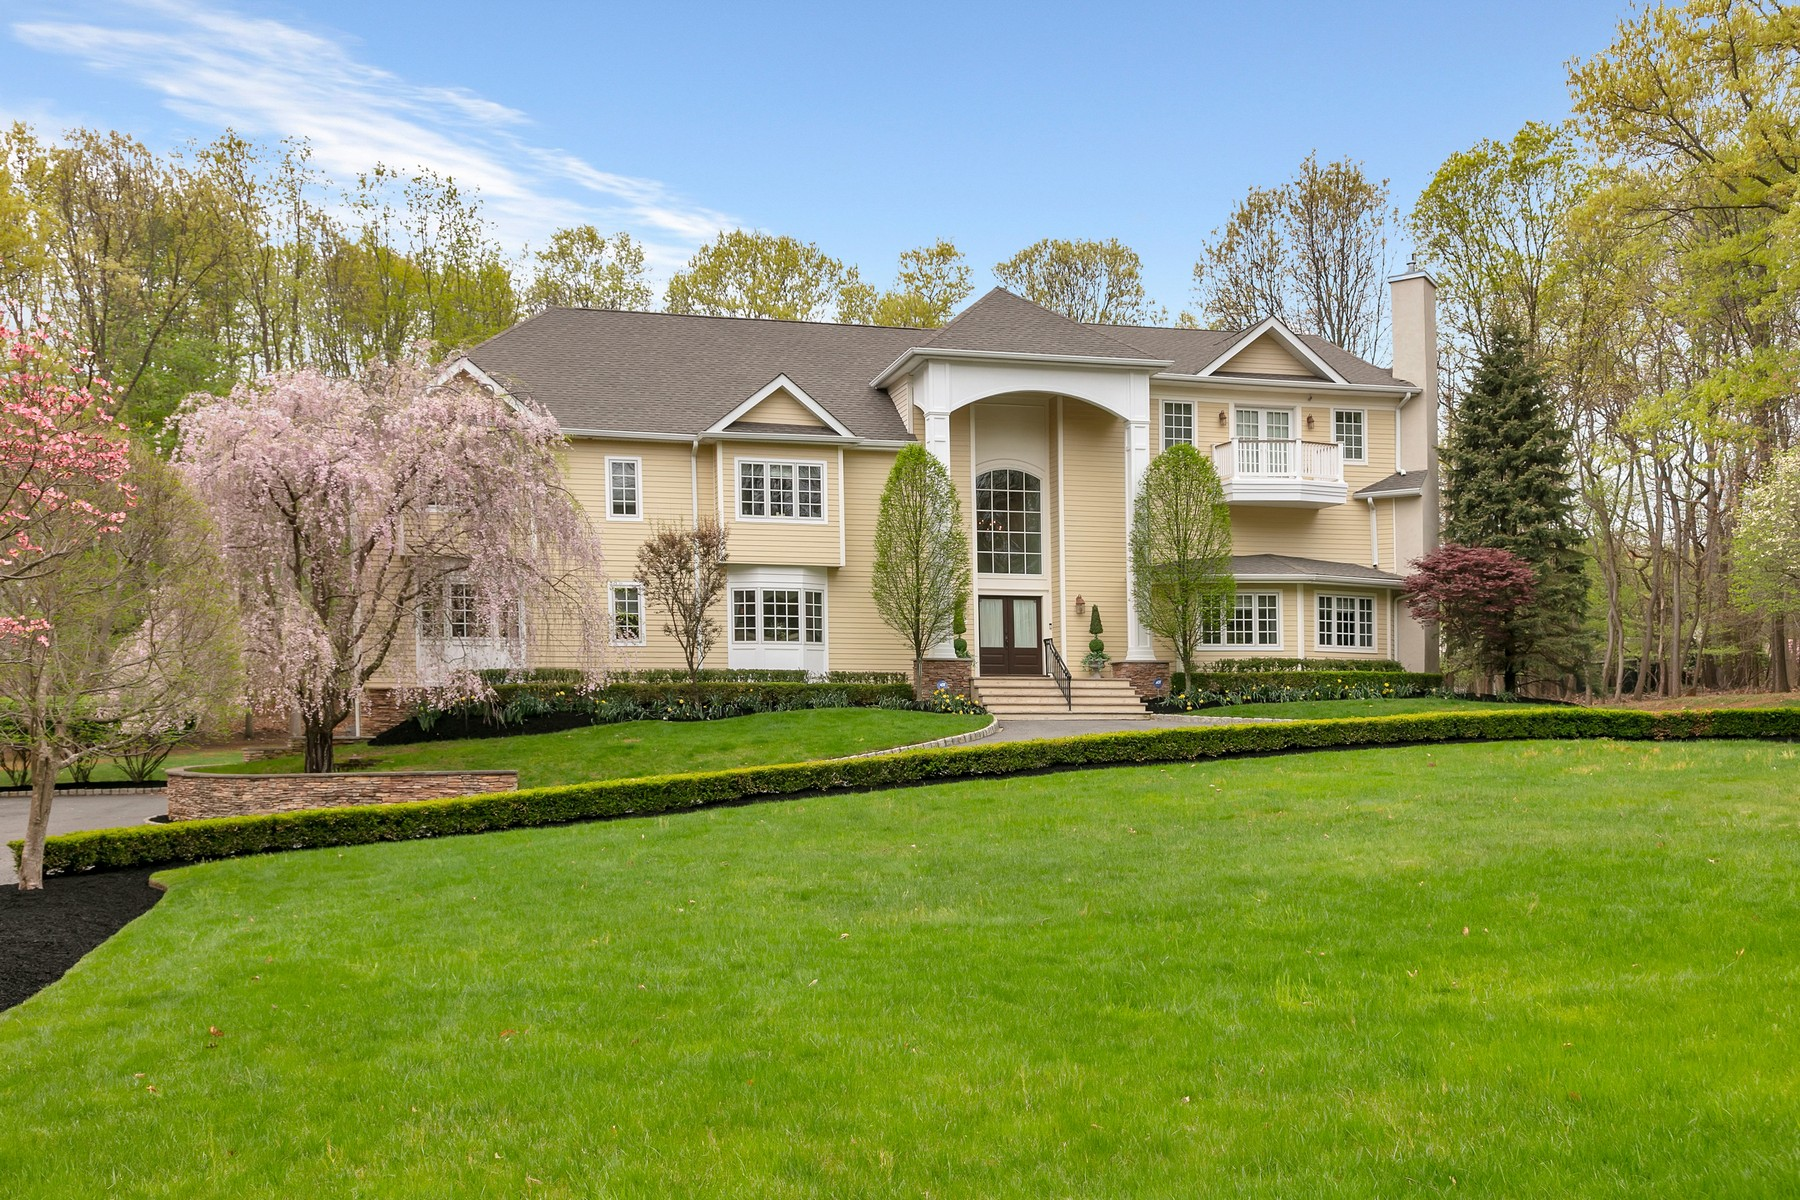 Single Family Home for Sale at Timeless Colonial 49 Prothero Road, Colts Neck, New Jersey 07722 United States